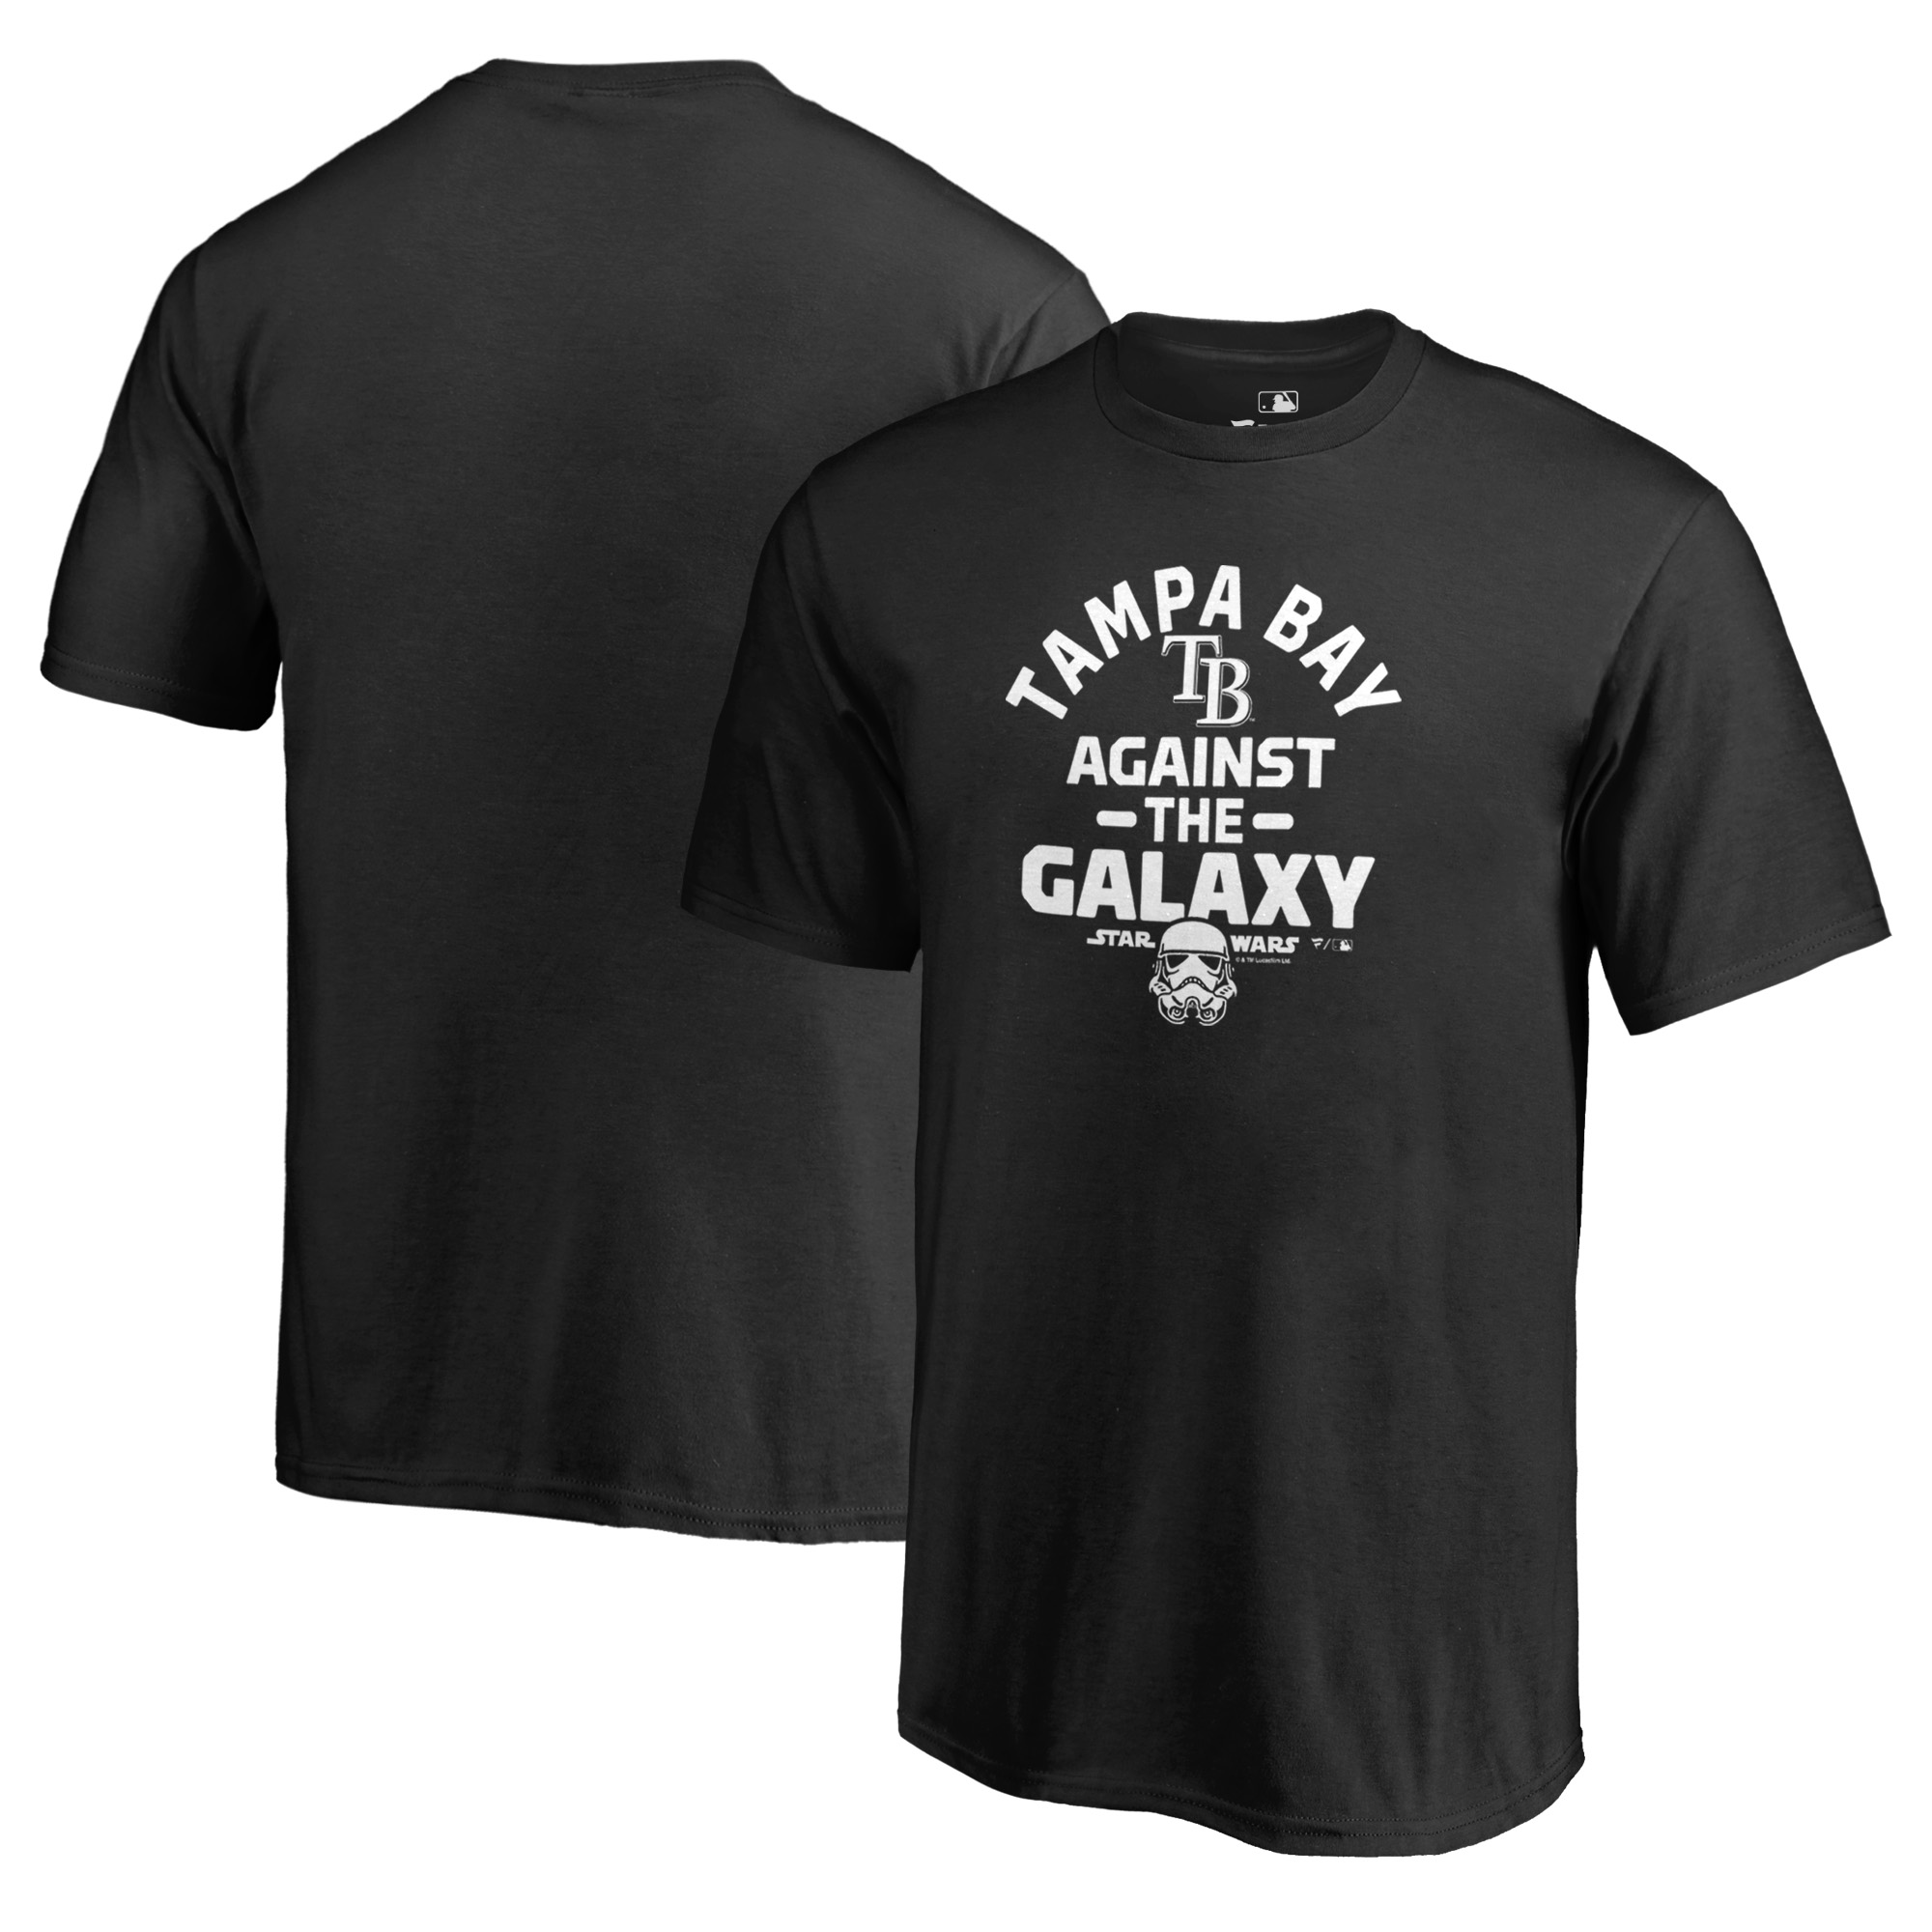 Tampa Bay Rays Fanatics Branded Youth MLB Star Wars Against The Galaxy T-Shirt - Black